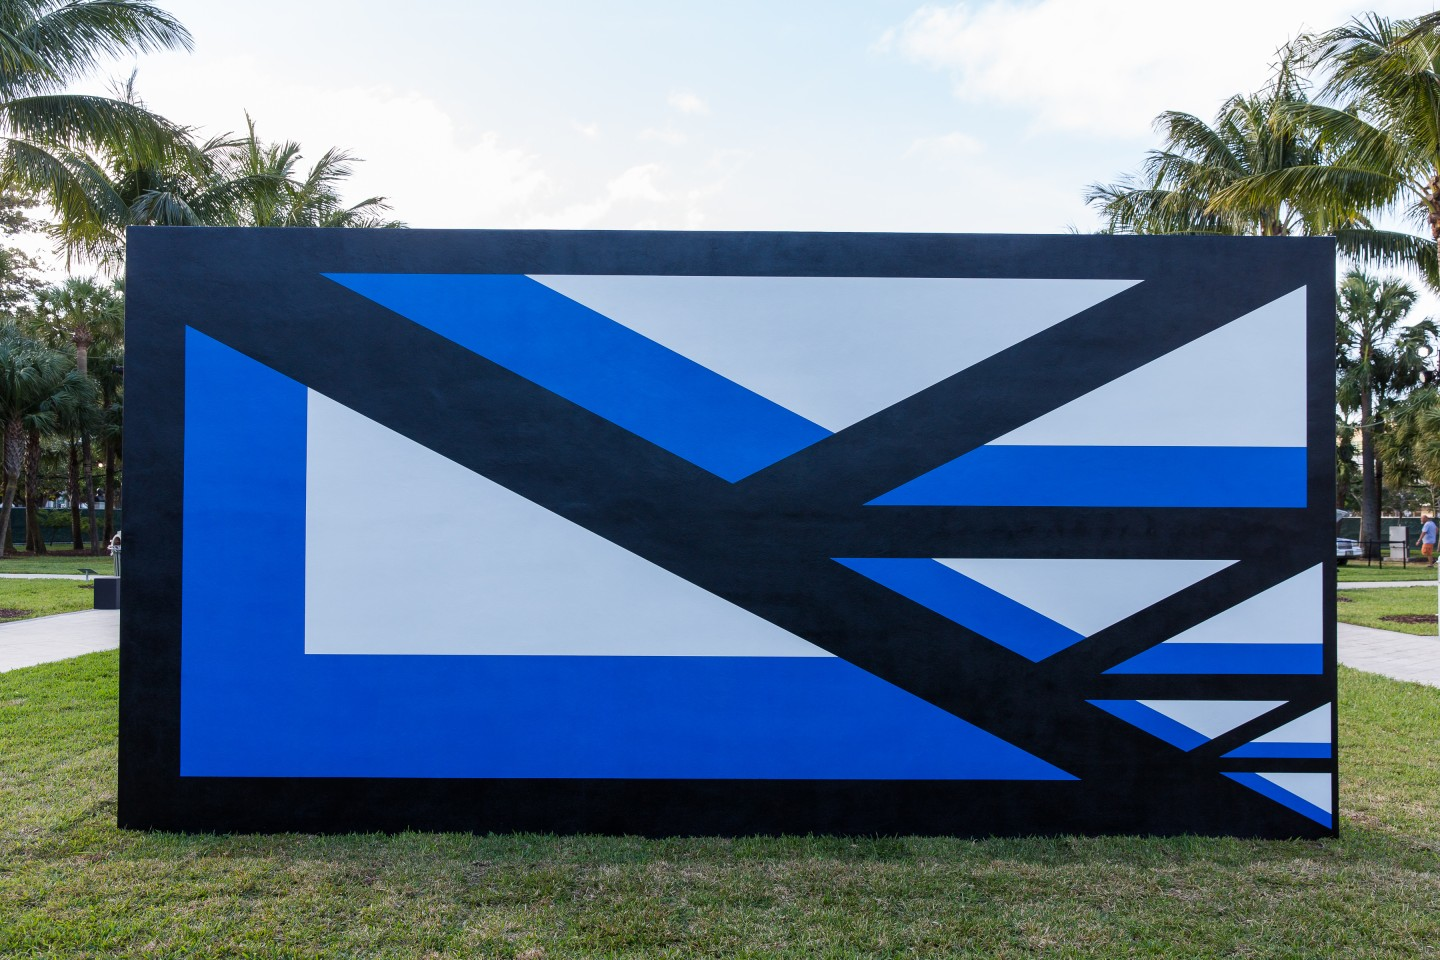 Claudia Comte, 128 Triangles and their Demonstration, 2016, at Public, Art Basel in Miami Beach. © Art Basel.